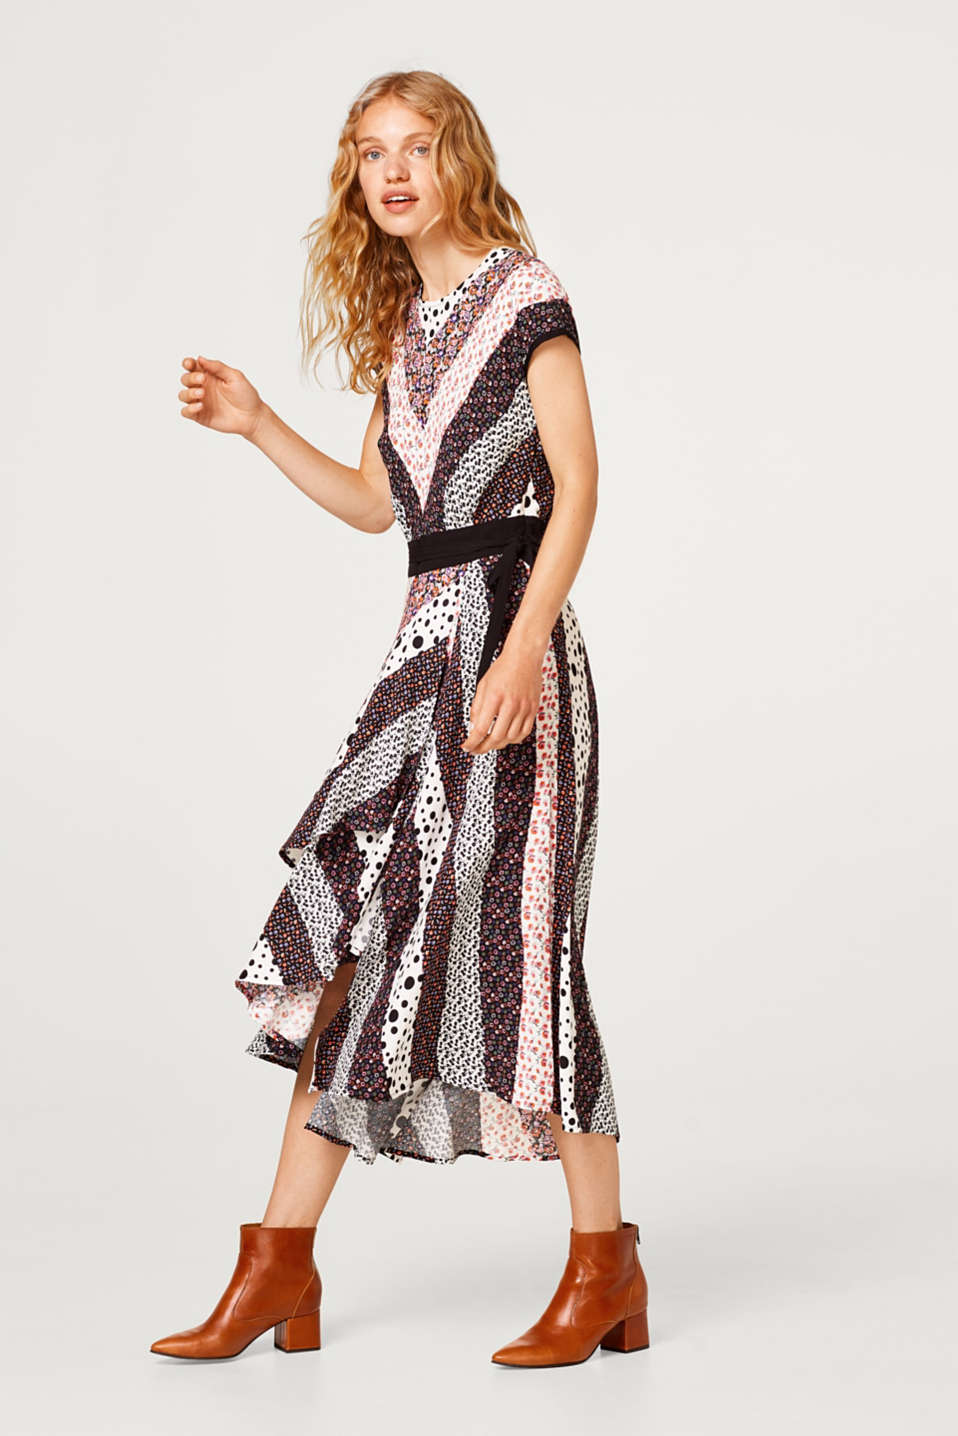 edc - Dress in a mix of patterns with a high-low hem